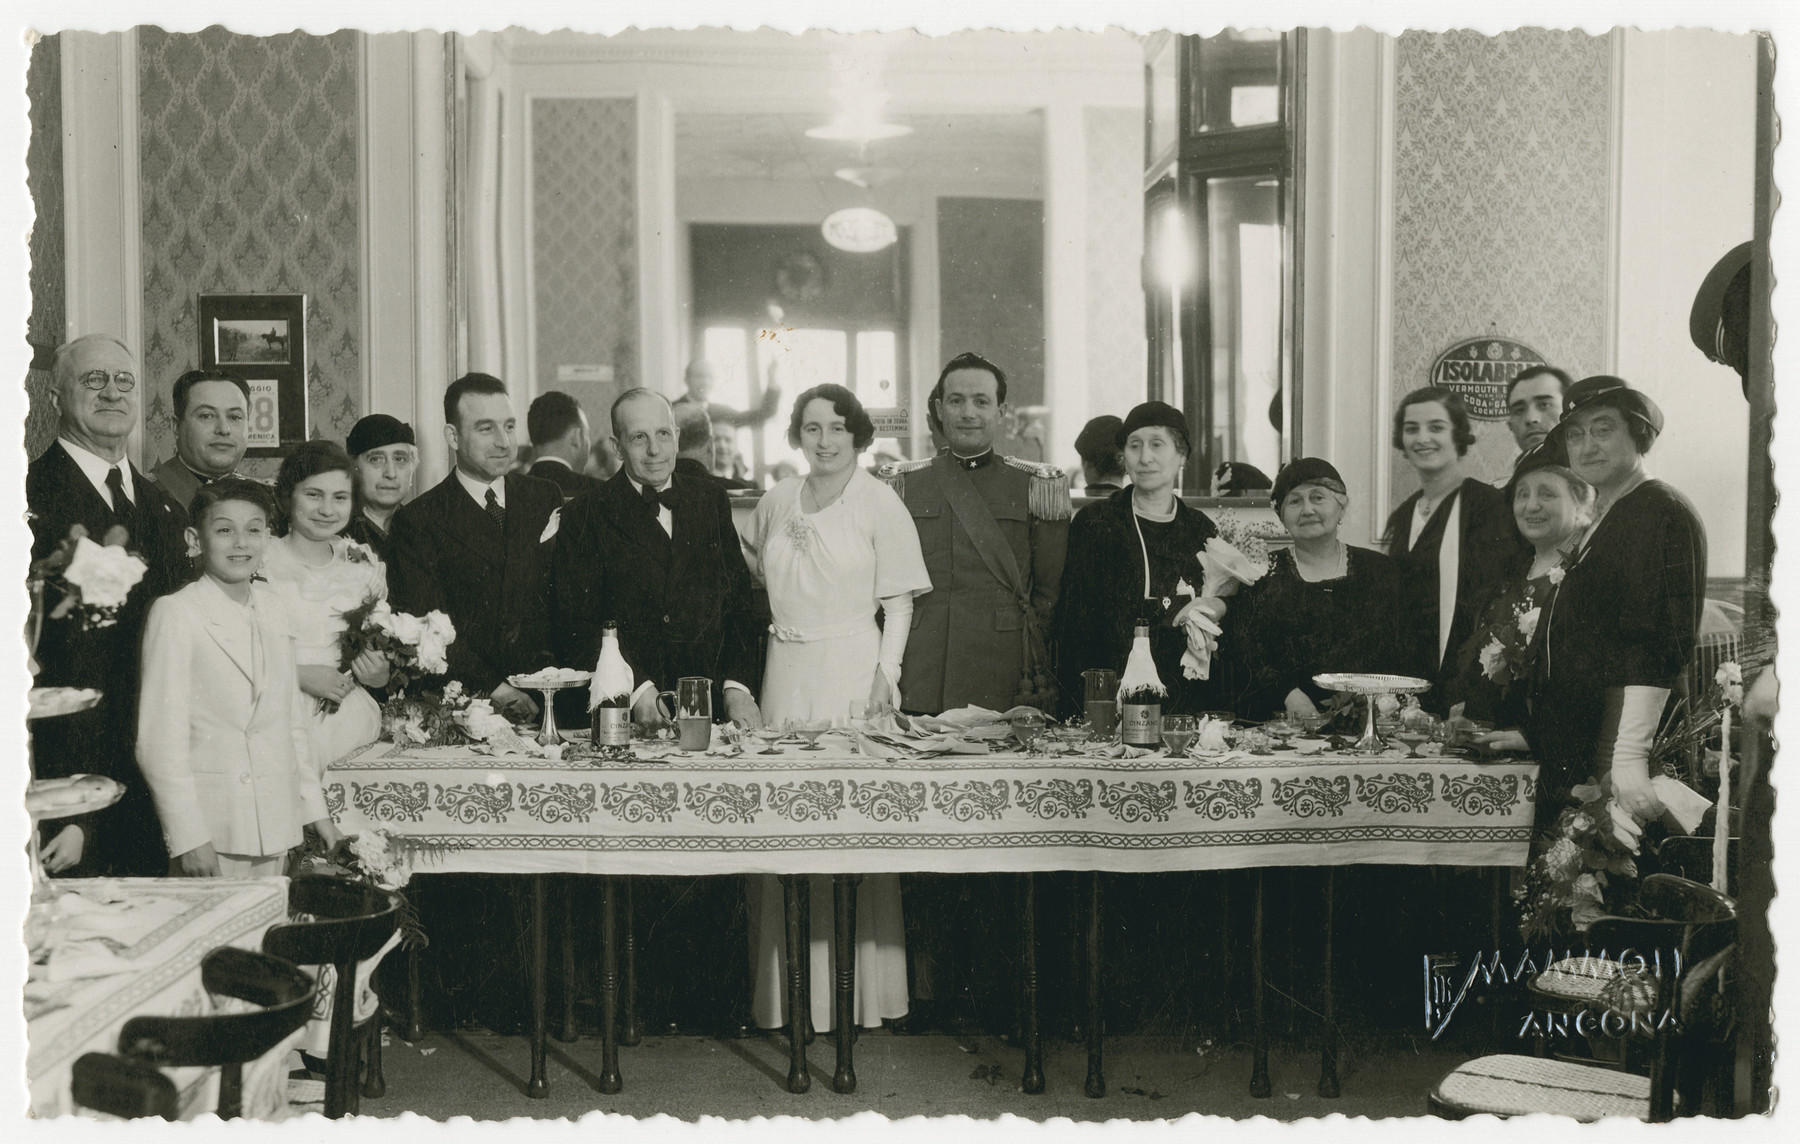 The Nacamu family celebrates a wedding,  Clotilde Coen Nacamu (1866-1958) is standing fifth from the right,.